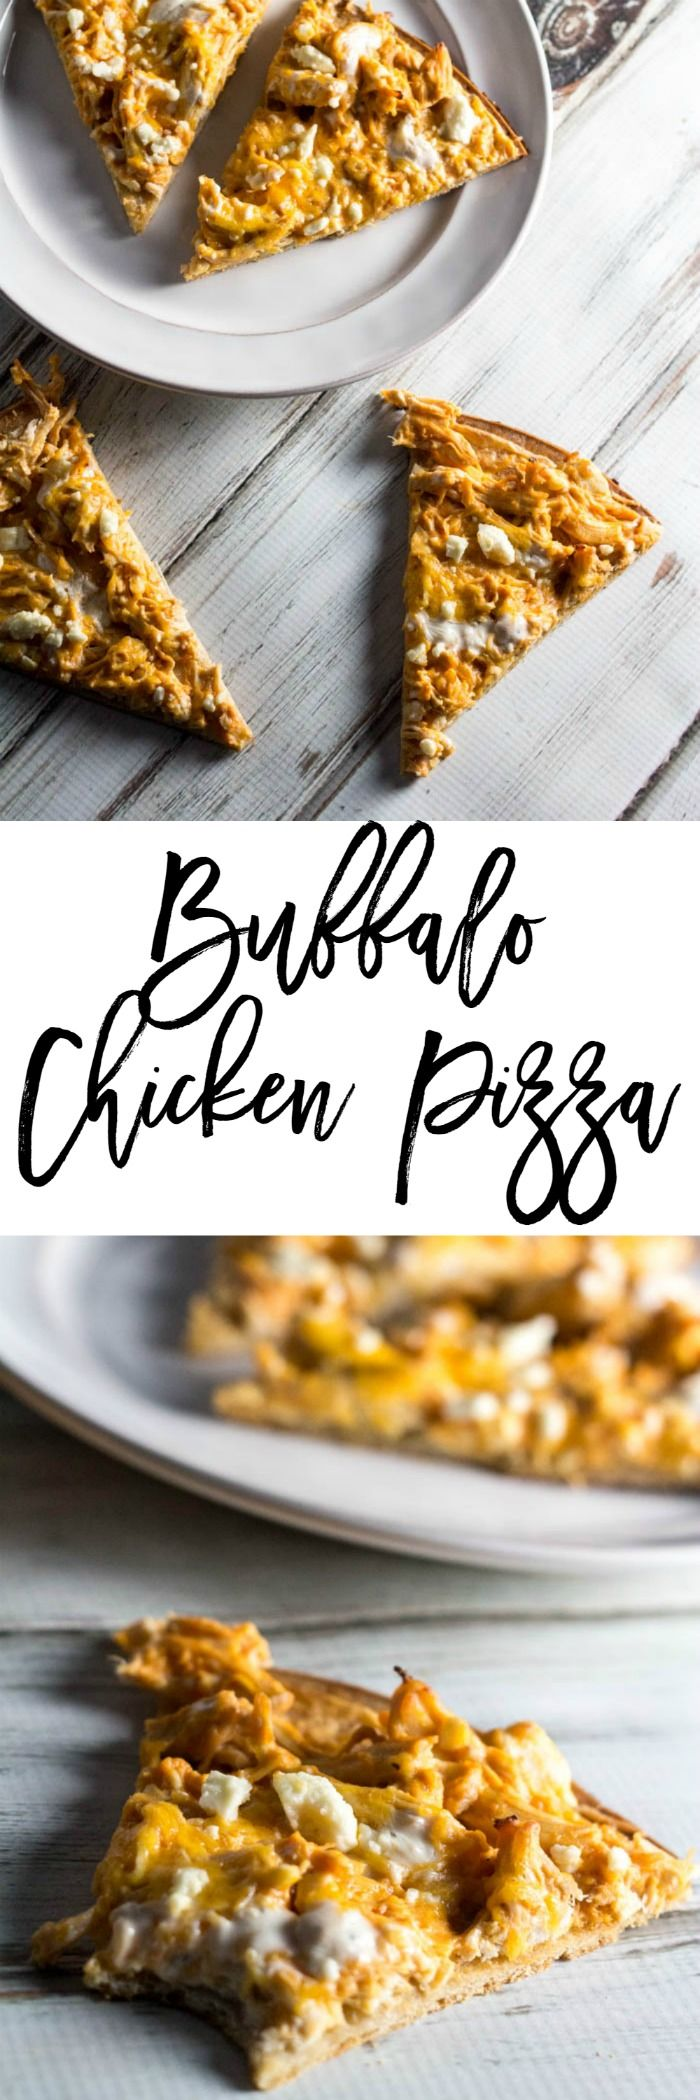 Buffalo Chicken Pizza - A healthier recipe alternative when you are craving a different kind of pizza. It's only 5 SmartPoints per slice on Weight Watchers.